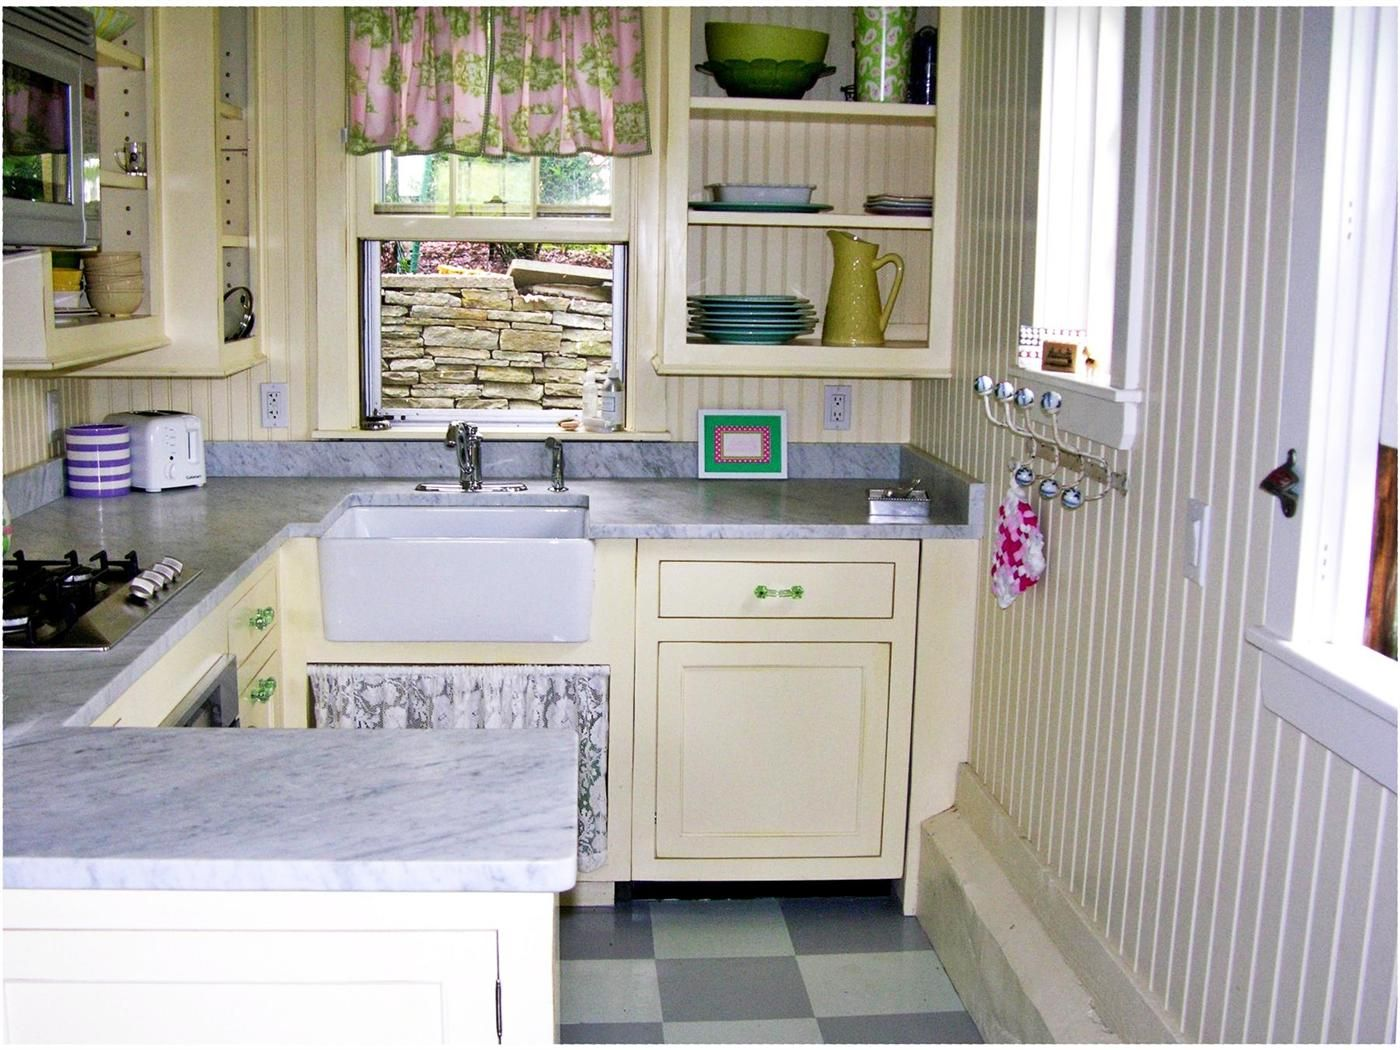 Nantucket cottage kitchen with stainless, marble and green